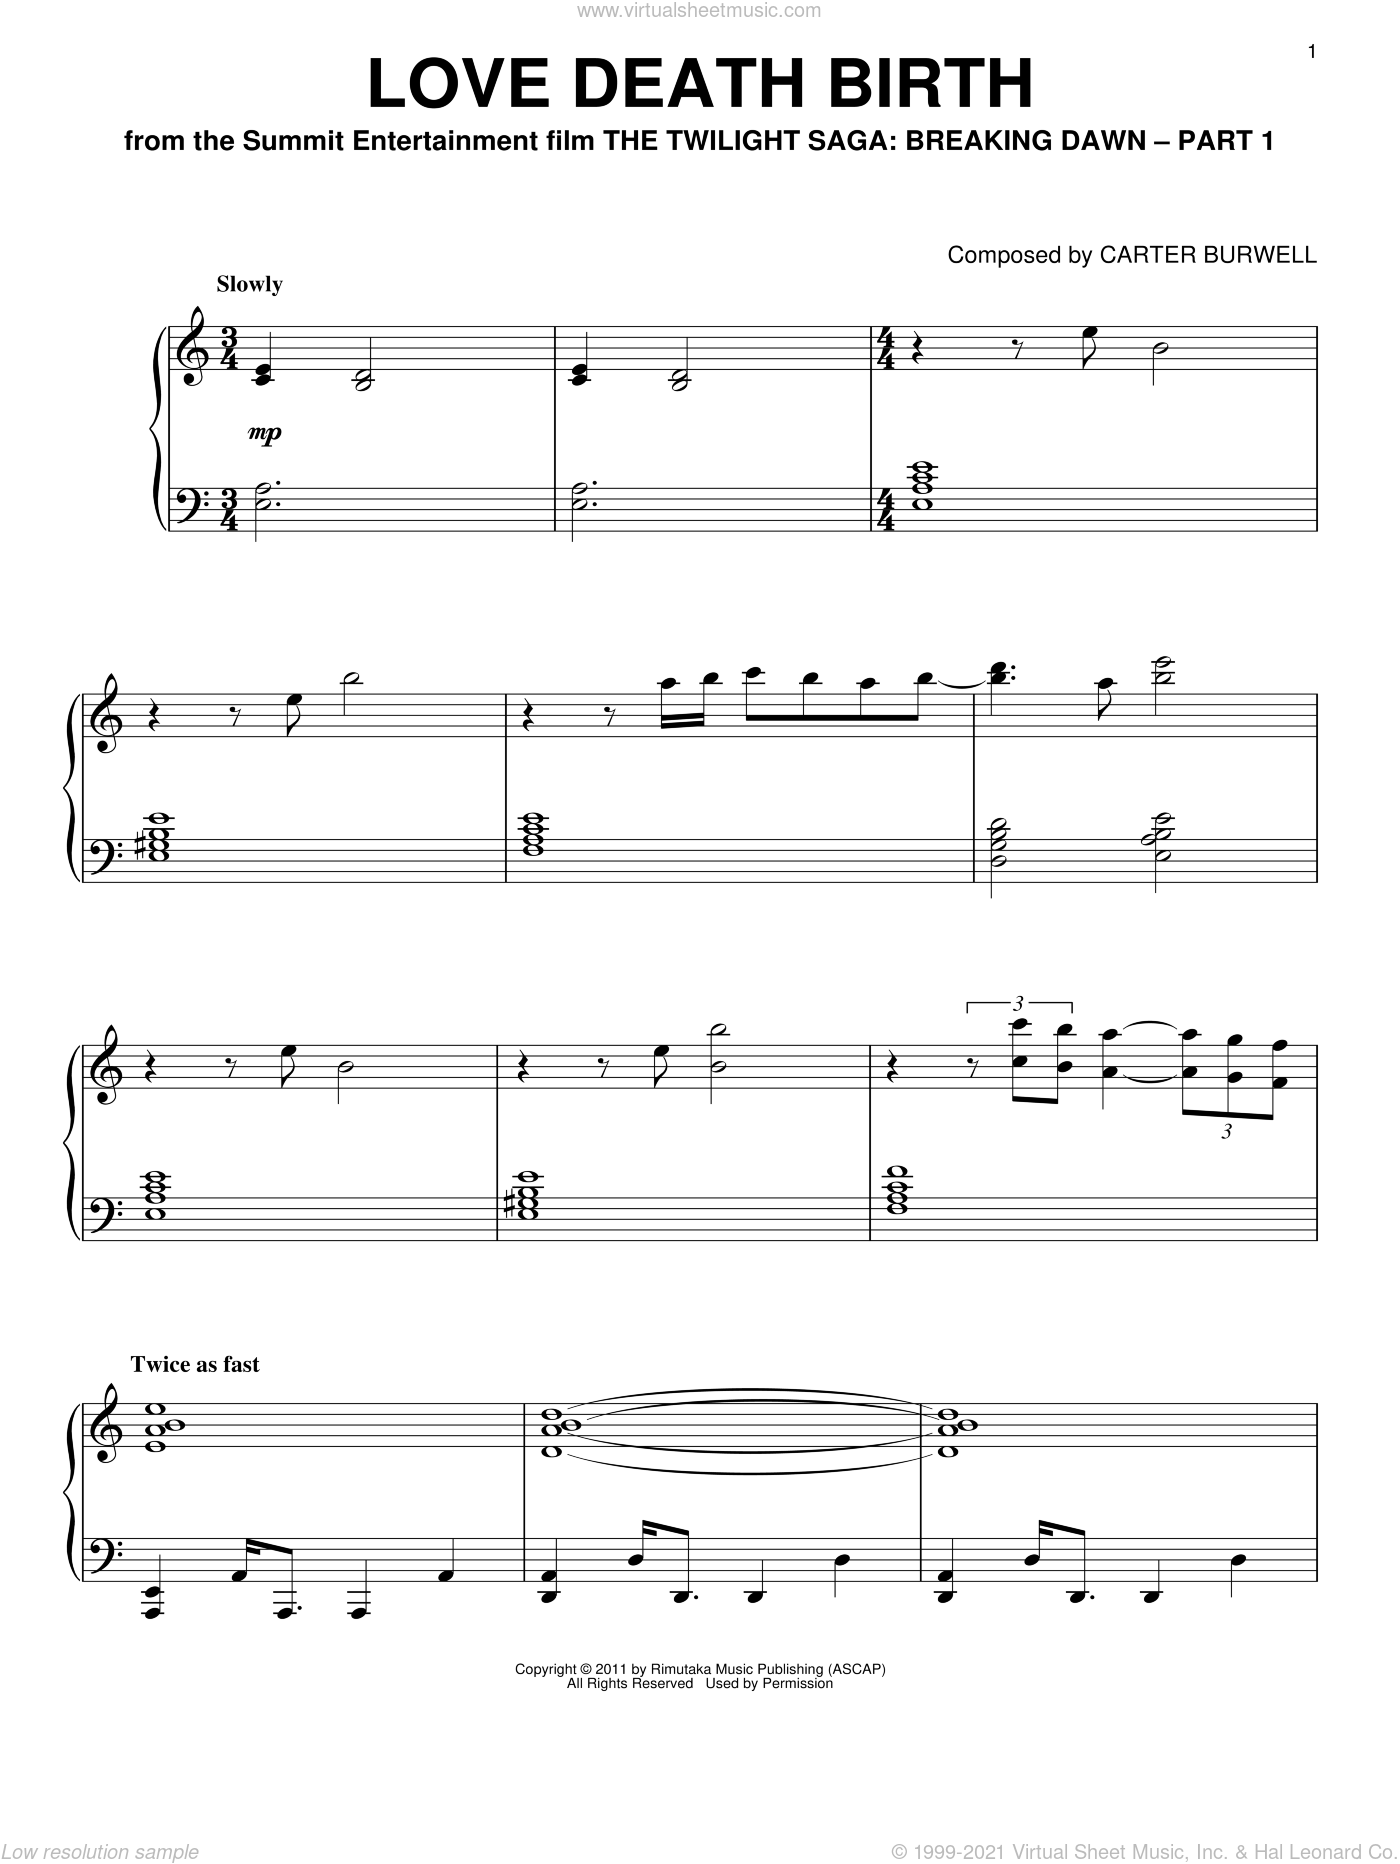 Love Death Birth sheet music for piano solo by Carter Burwell